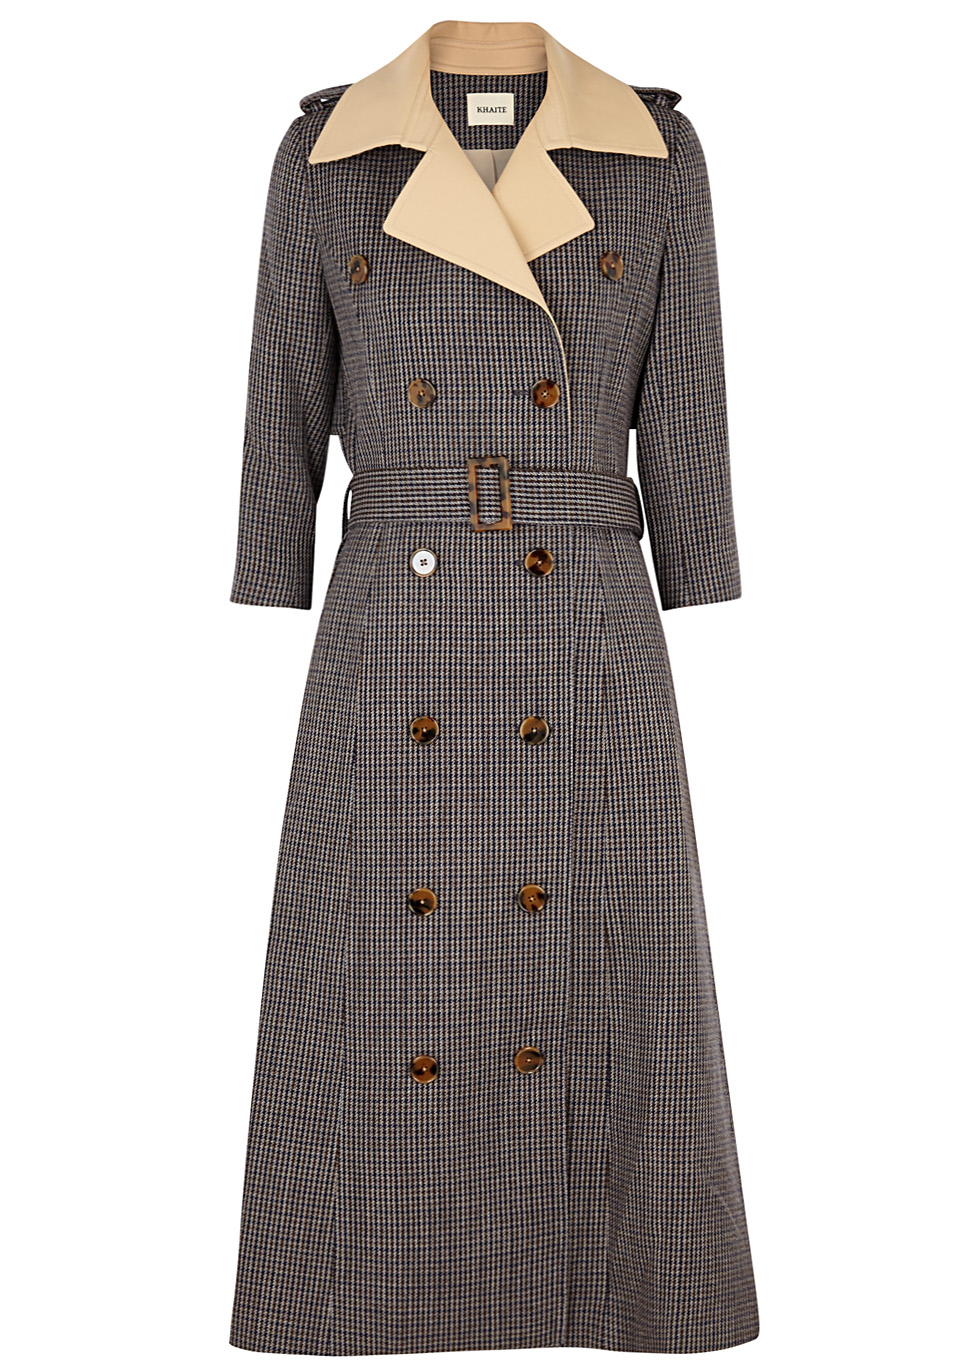 CHARLOTTE DOUBLE-BREASTED WOOL TRENCH COAT